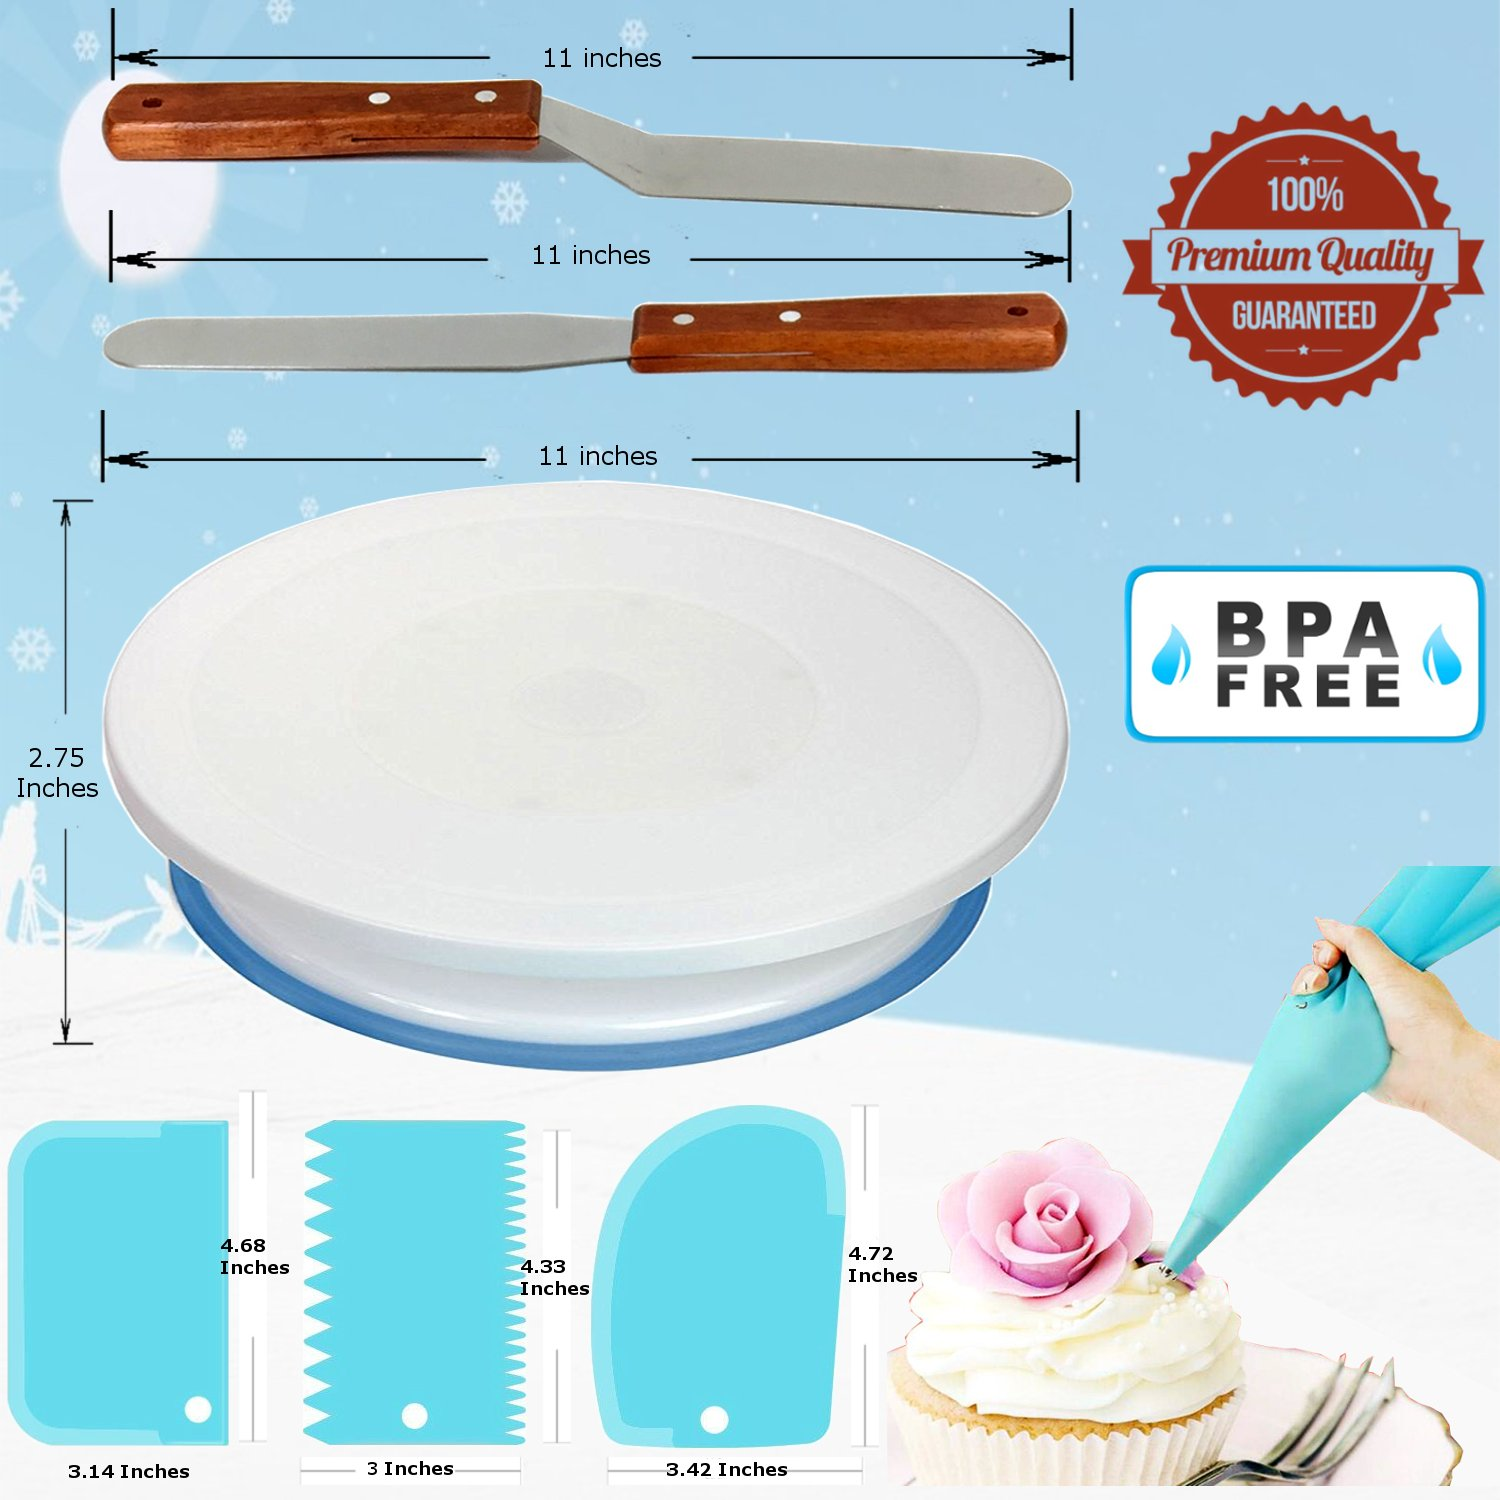 73 pcs Cake Decorating Supplies Kit for Beginners-1 Turntable stand-24 Numbered Easy to use icing tips with pattern chart and E.Book-1 Cake Leveler-Straight and Angled Spatula-3 Russian Piping nozzles by RFAQK (Image #2)